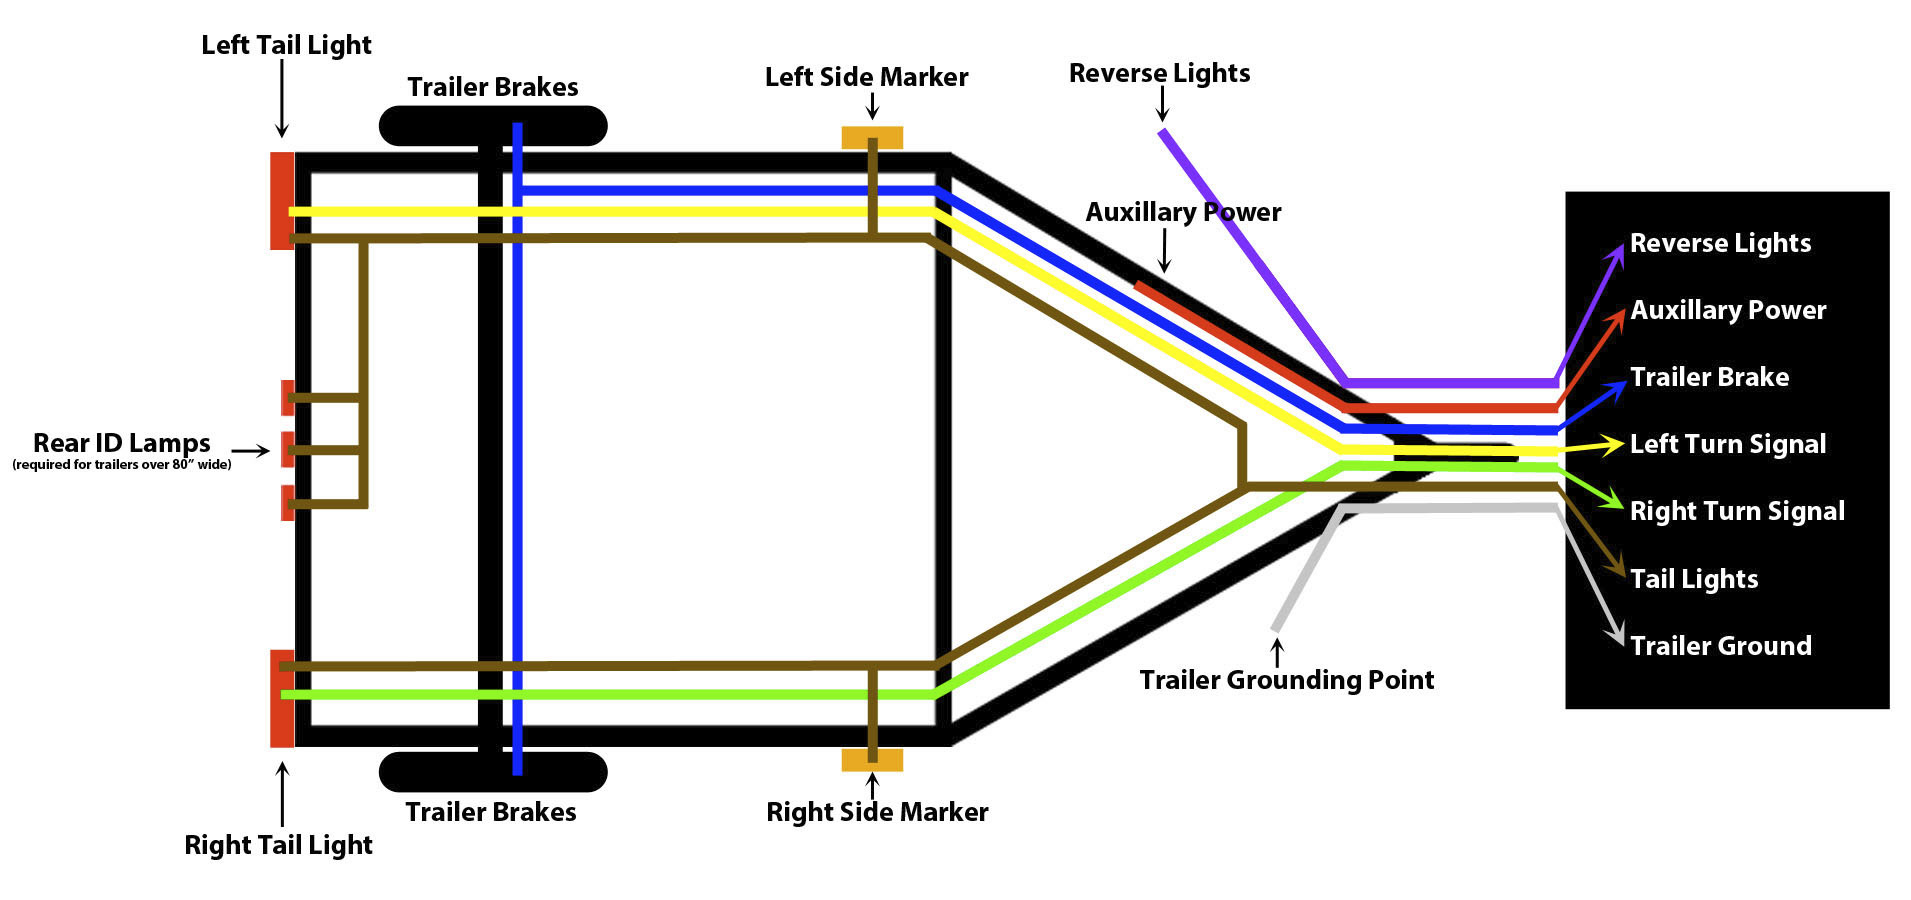 How To Wire Trailer Lights - Trailer Wiring Guide & Videos - Car To Trailer Wiring Diagram